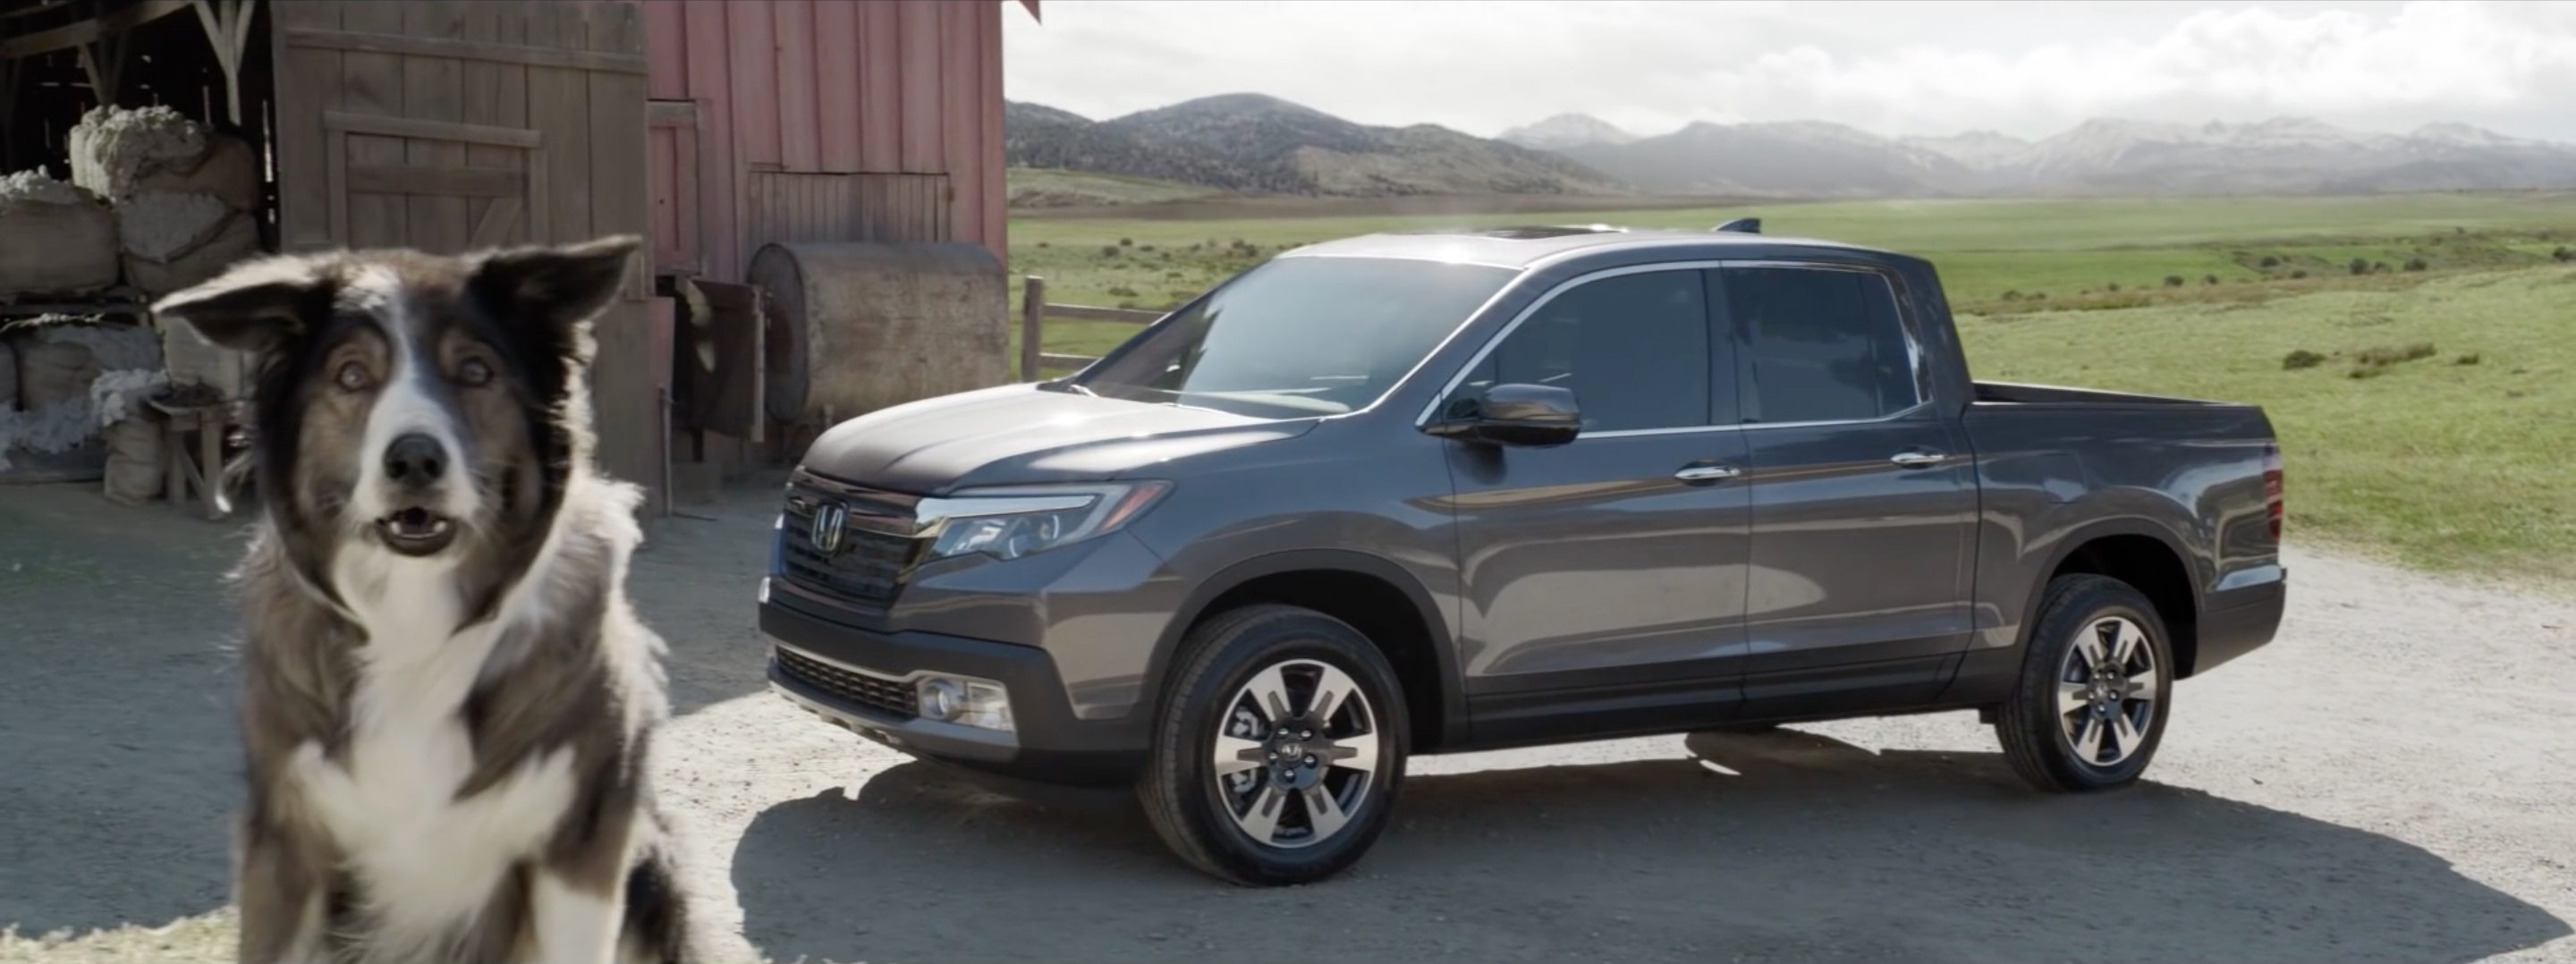 Honda Ridgeline A Truck to love The Inspiration Room